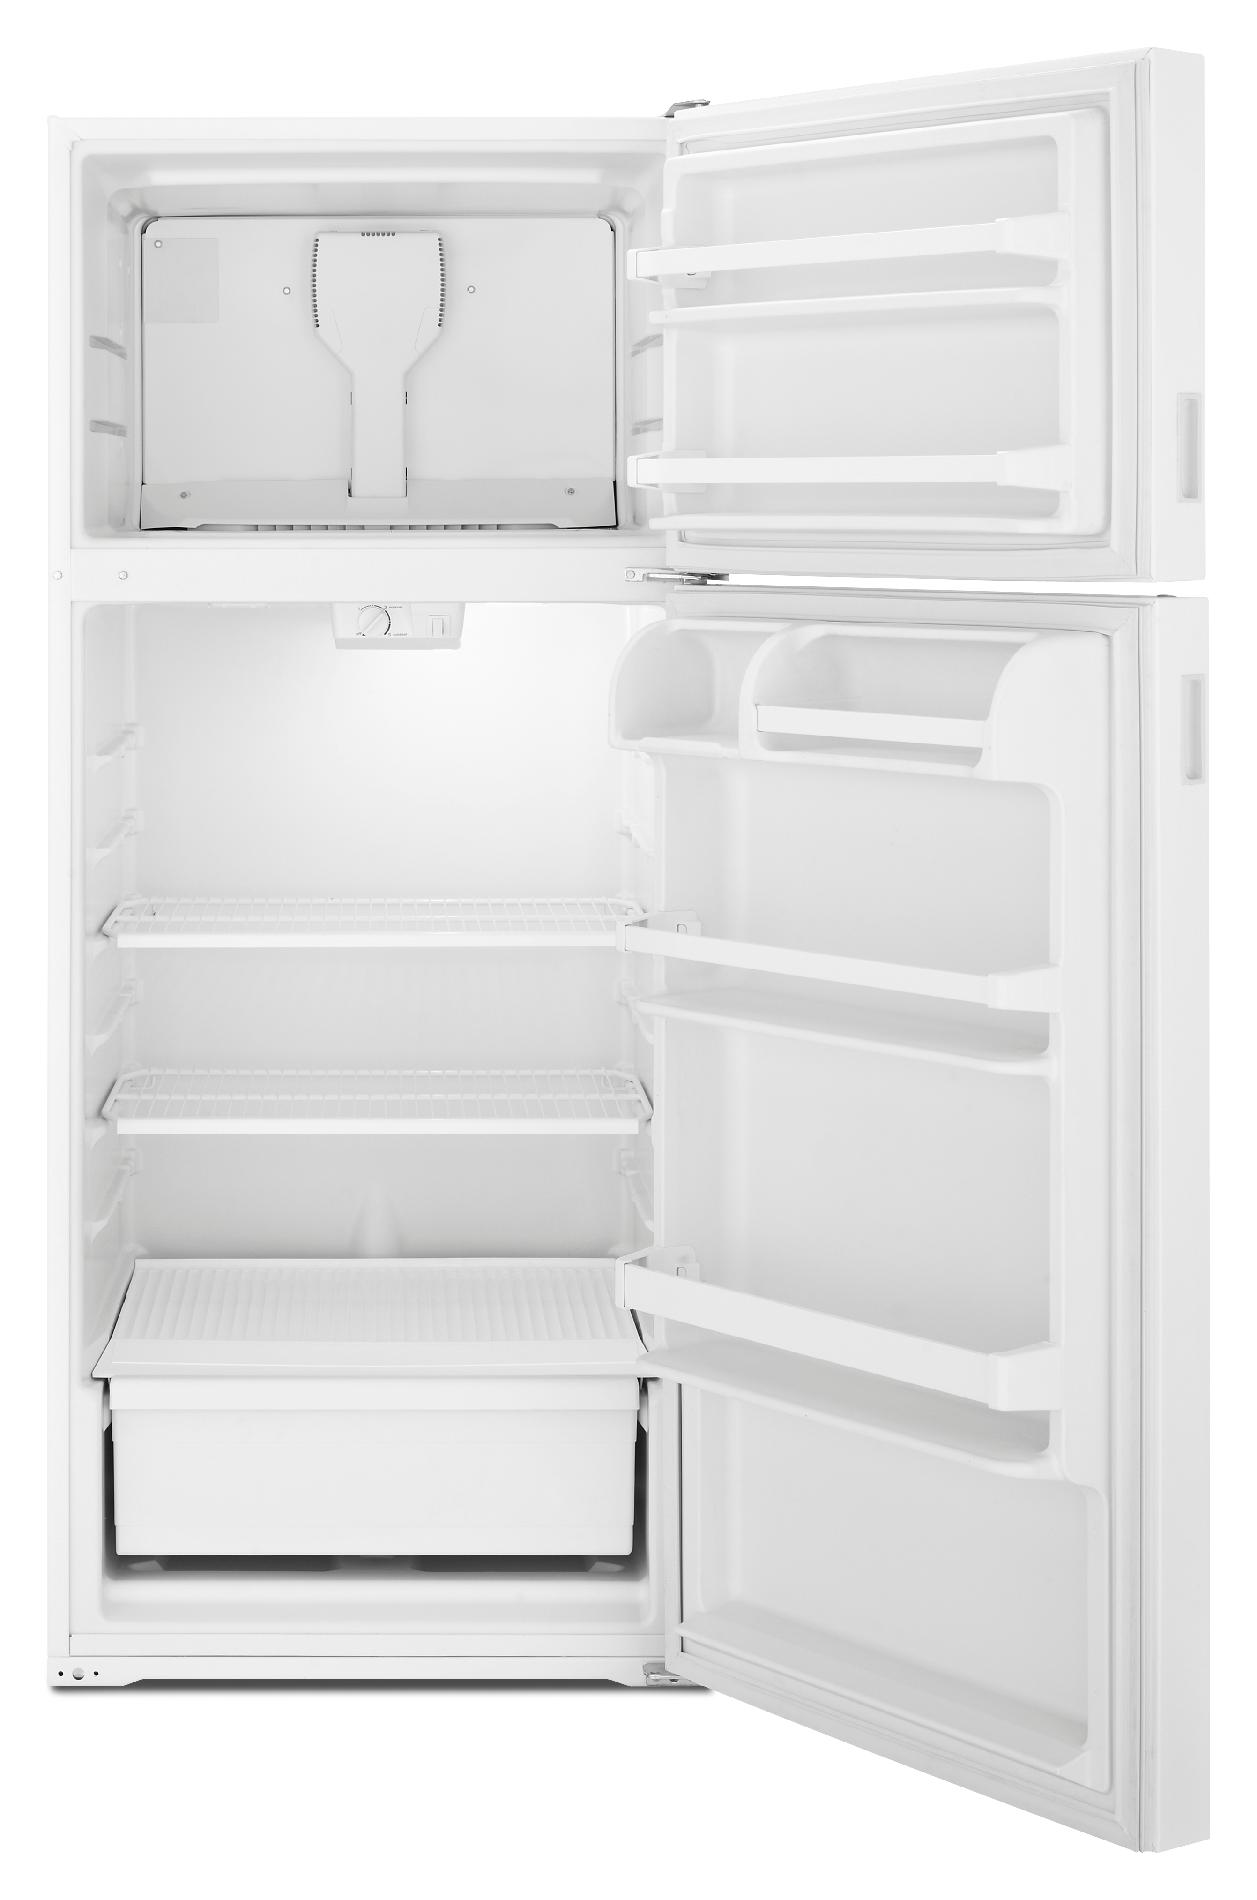 Whirlpool  18 cu ft top freezer refrigerator